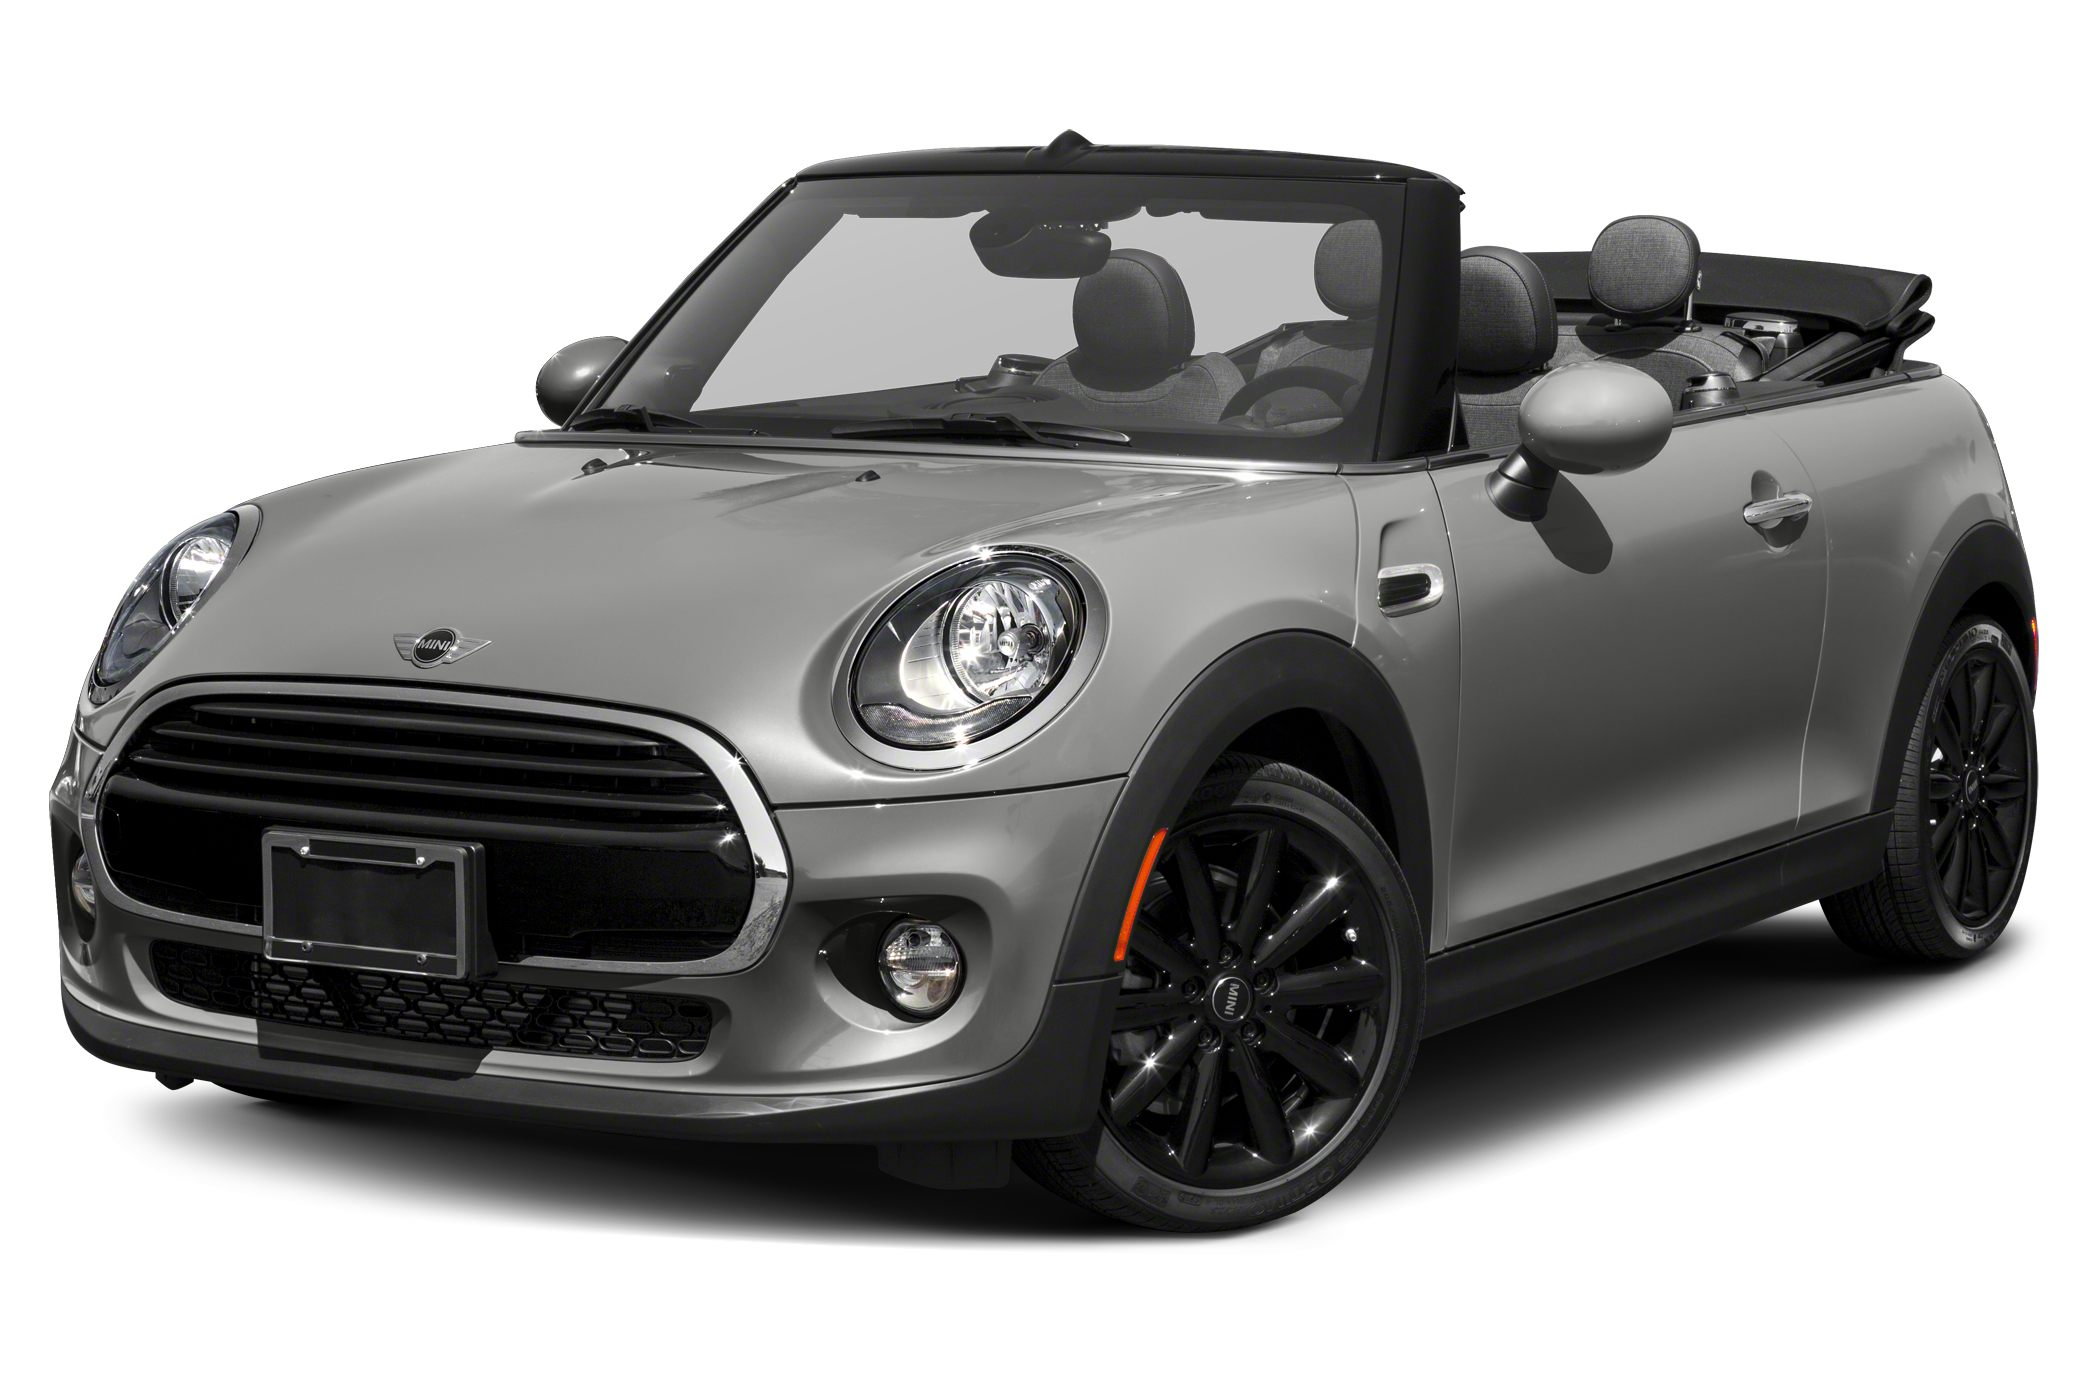 mini cooper white convertible images galleries with a bite. Black Bedroom Furniture Sets. Home Design Ideas